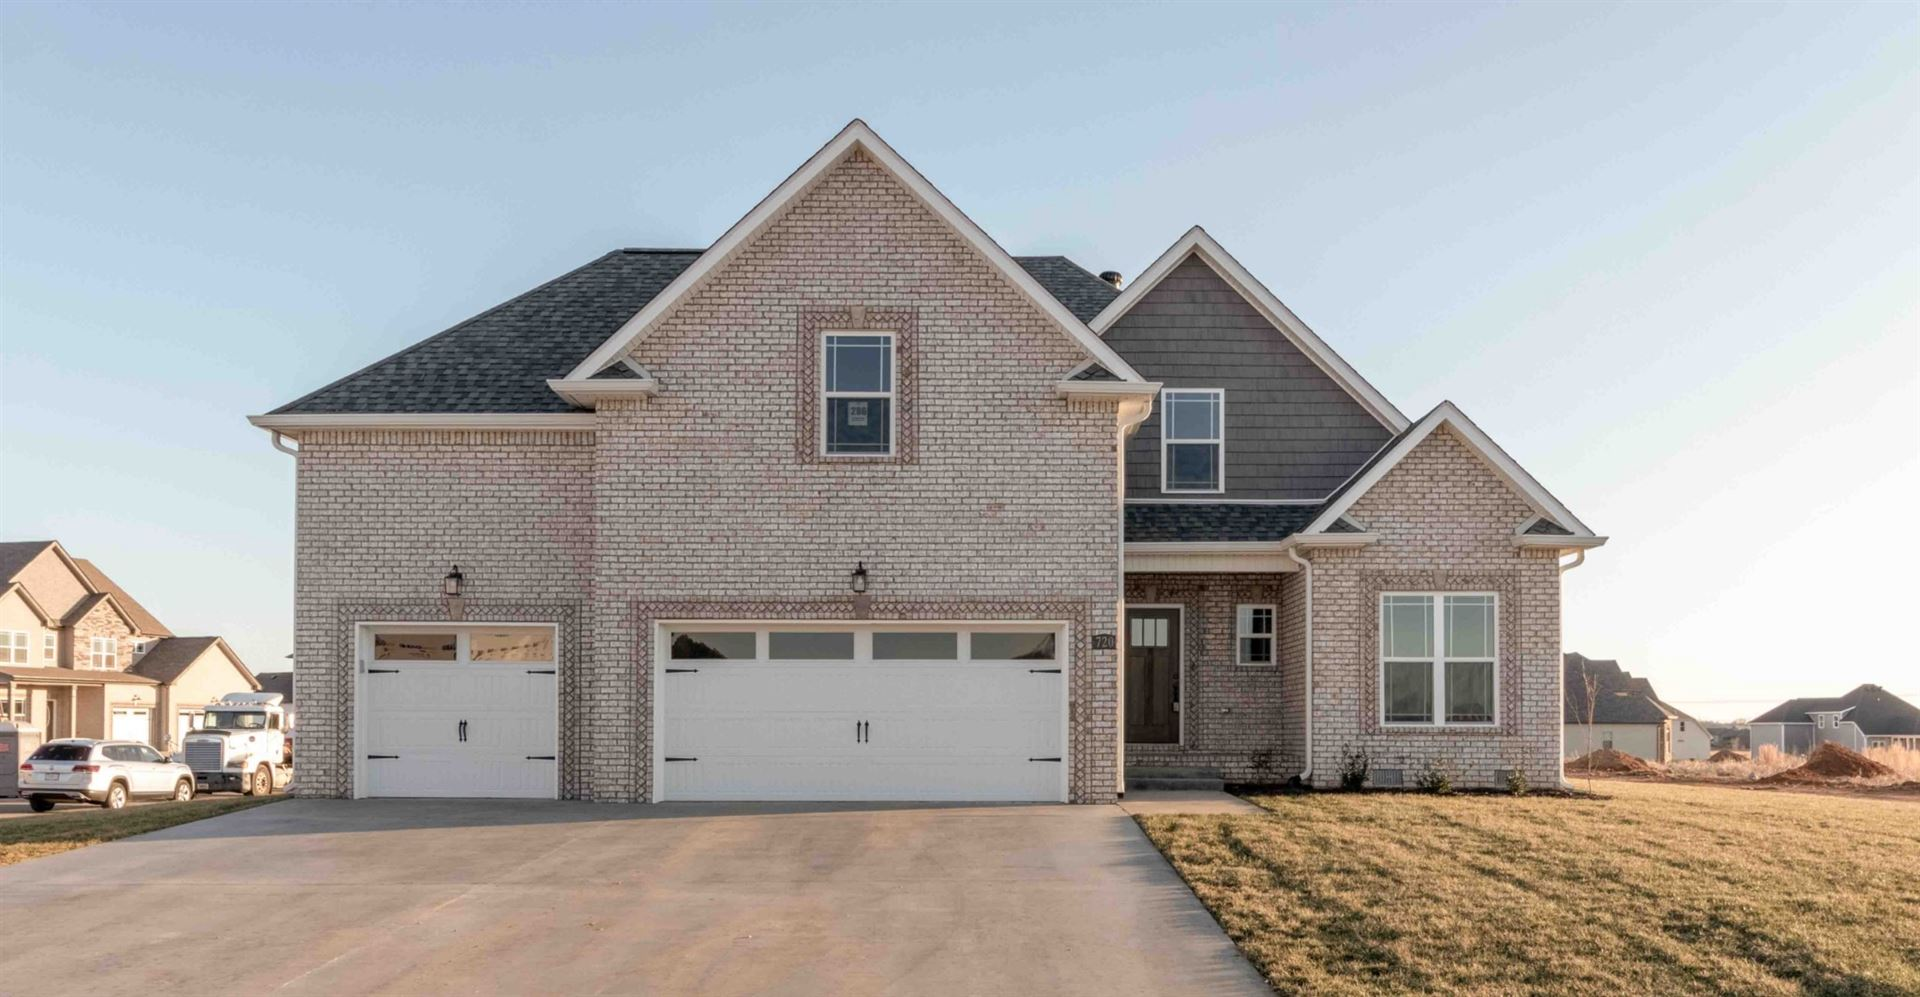 286 Wellington Fields, Clarksville, TN 37043 - MLS#: 2182140